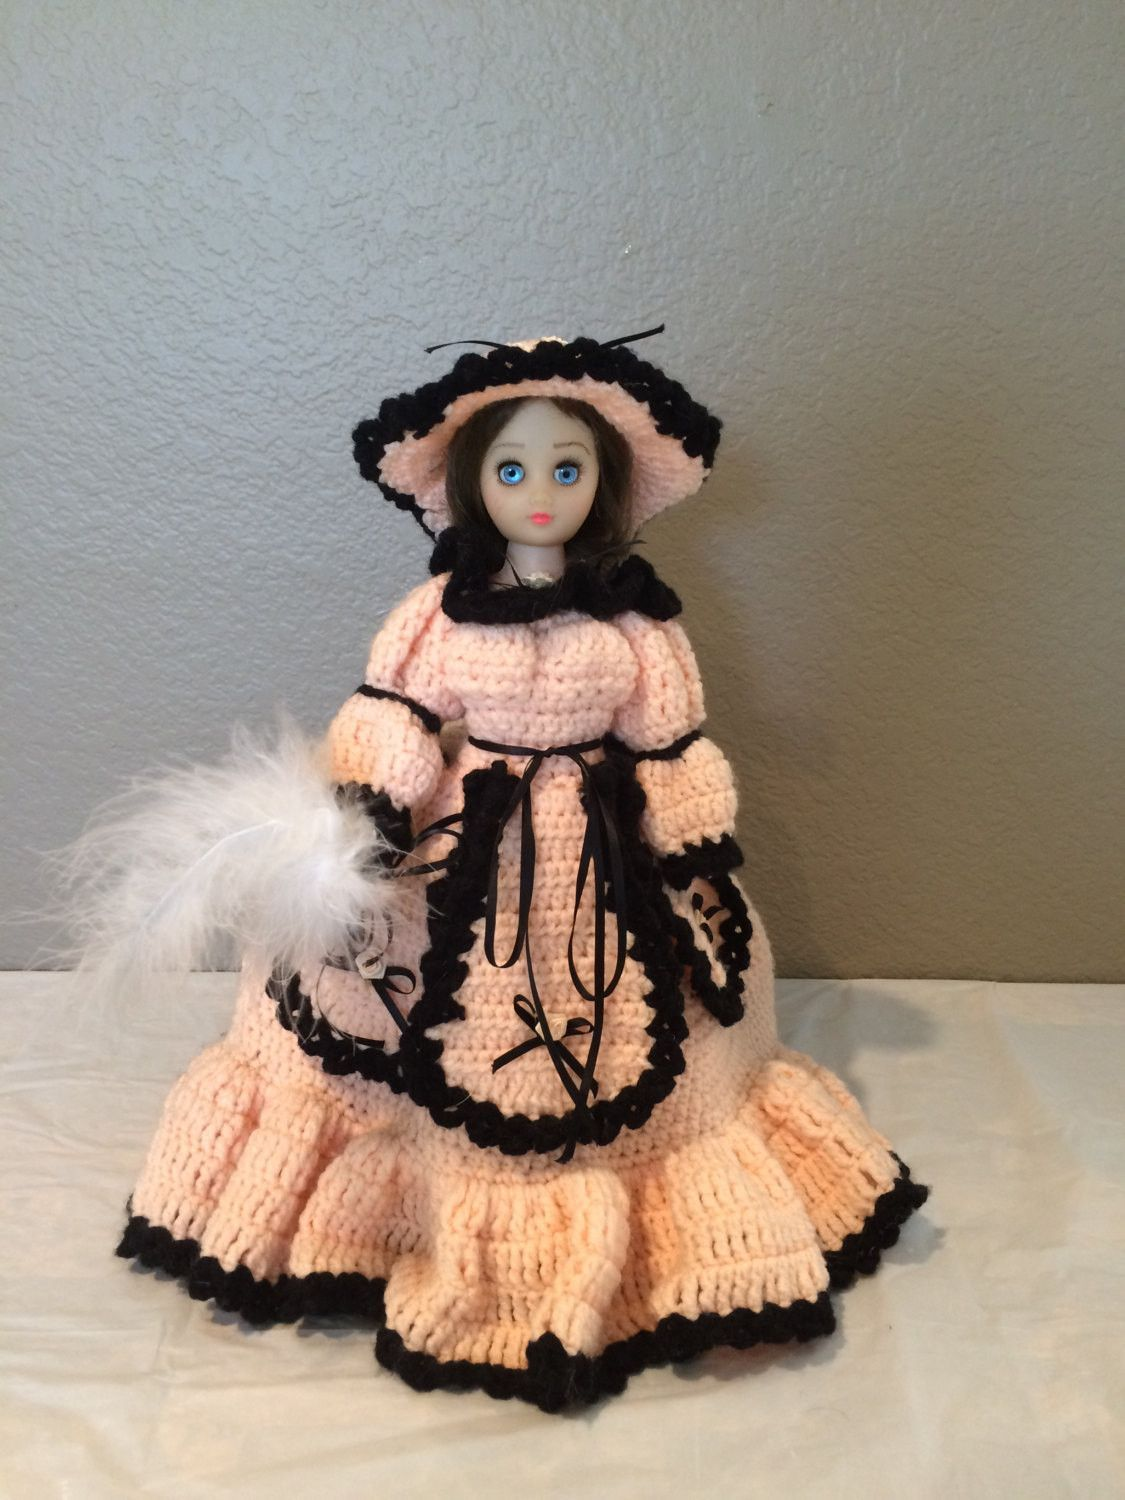 Vintage Blinking Eye Doll with Victorian Style Handmade Crocheted Dress Hat 15""